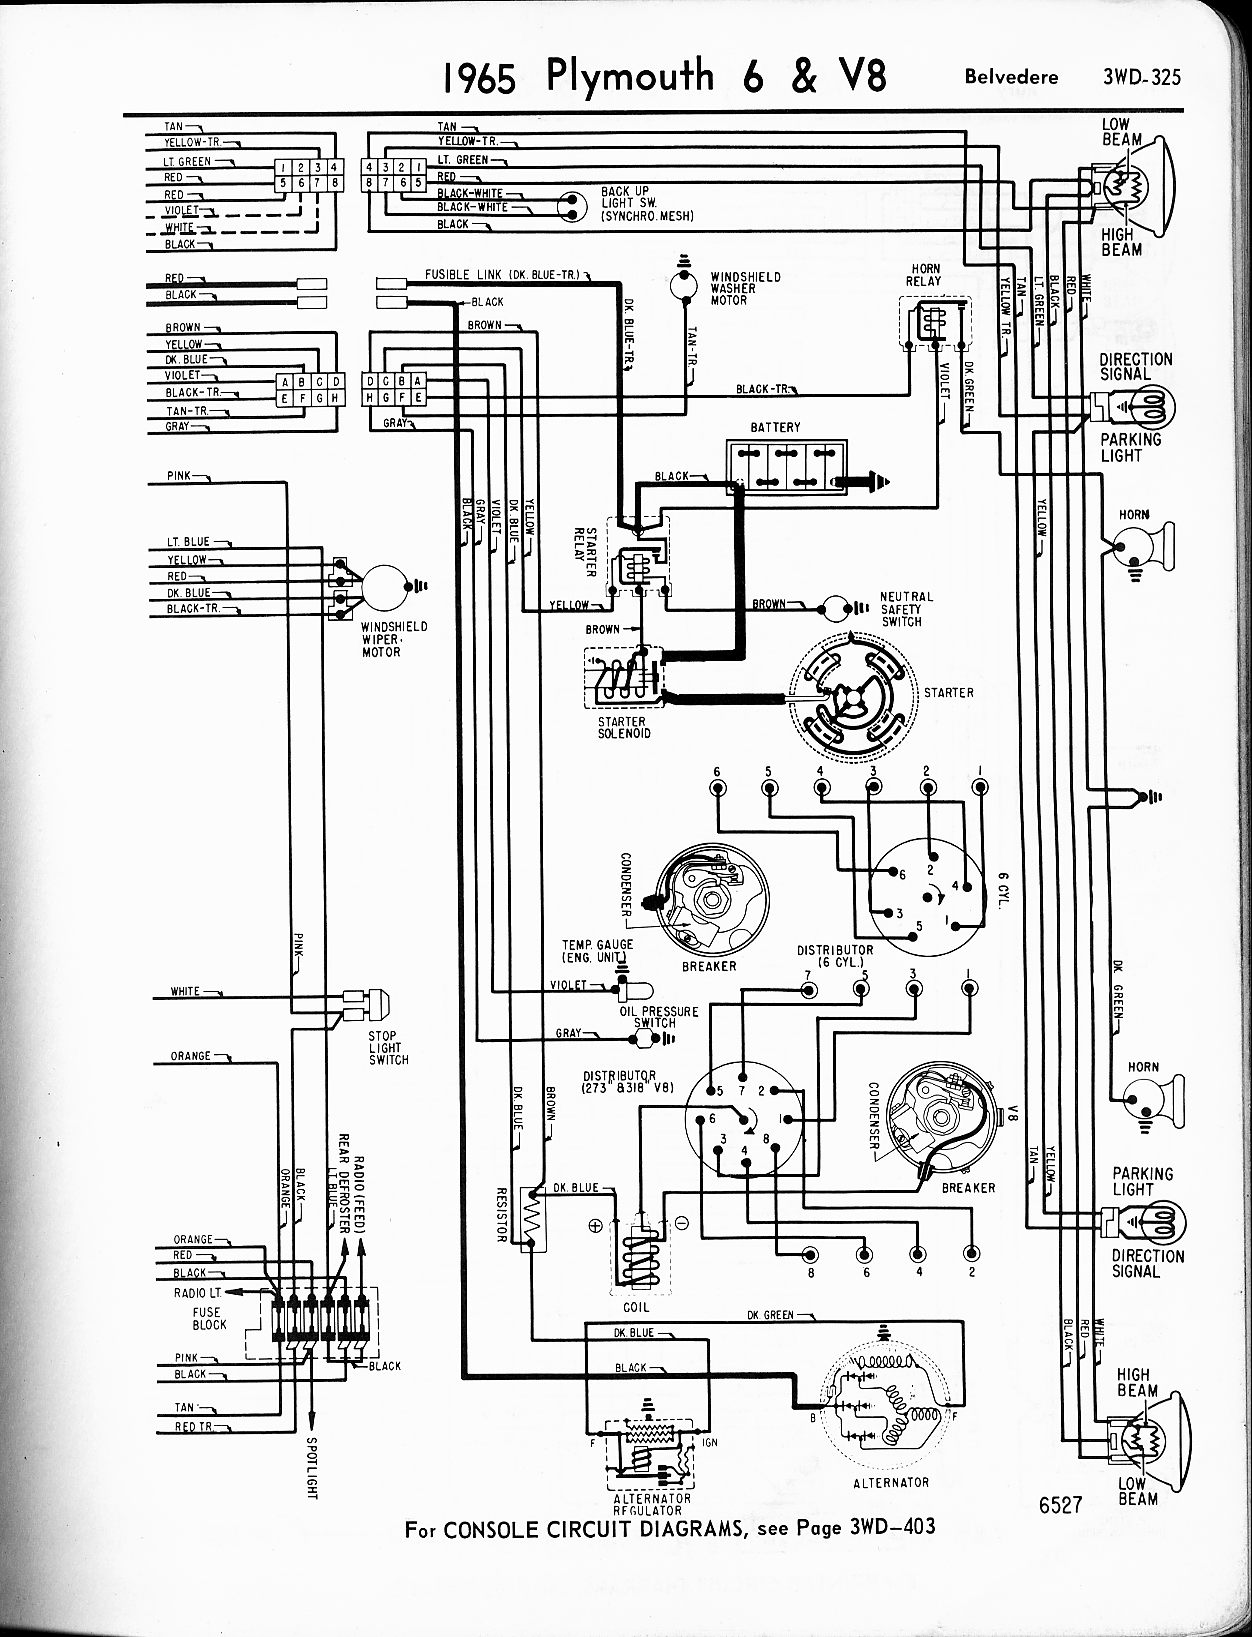 Wiring Diagram 73 Cuda Archive Of Automotive 1967 Barracuda Dash Plymouth Schematic Rh Asparklingjourney Com